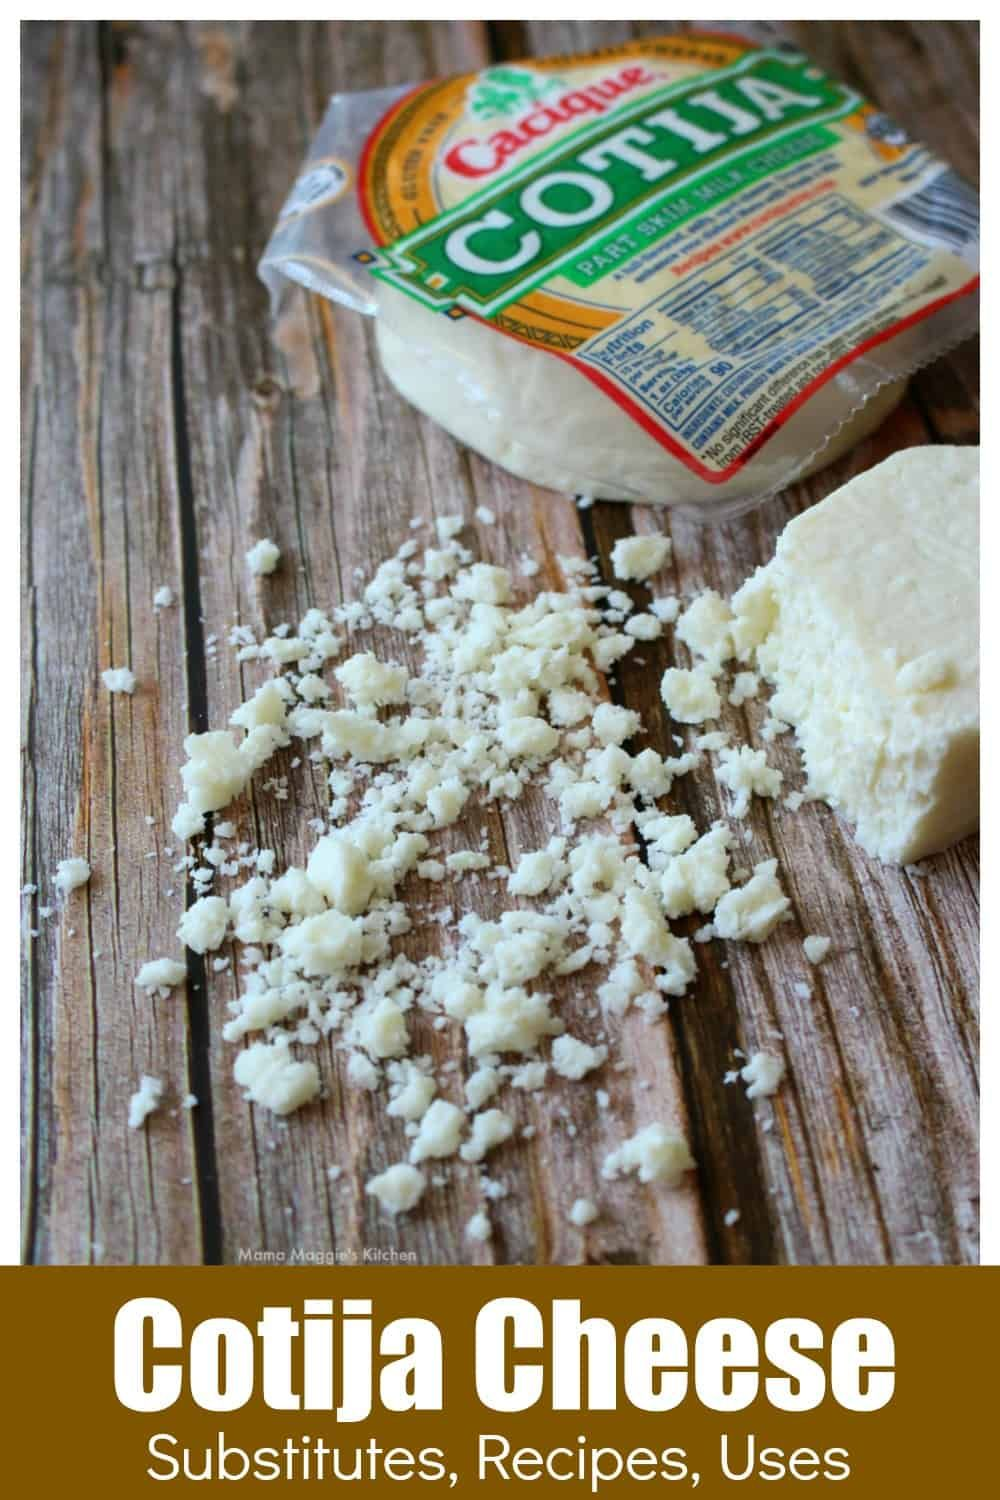 Cotija Is A Salty And Crumbly Mexican Cheese It Makes A Perfect Topping For Tacos Enchiladas And More By Mama Ma Cotija Cheese Mexican Food Recipes Recipes